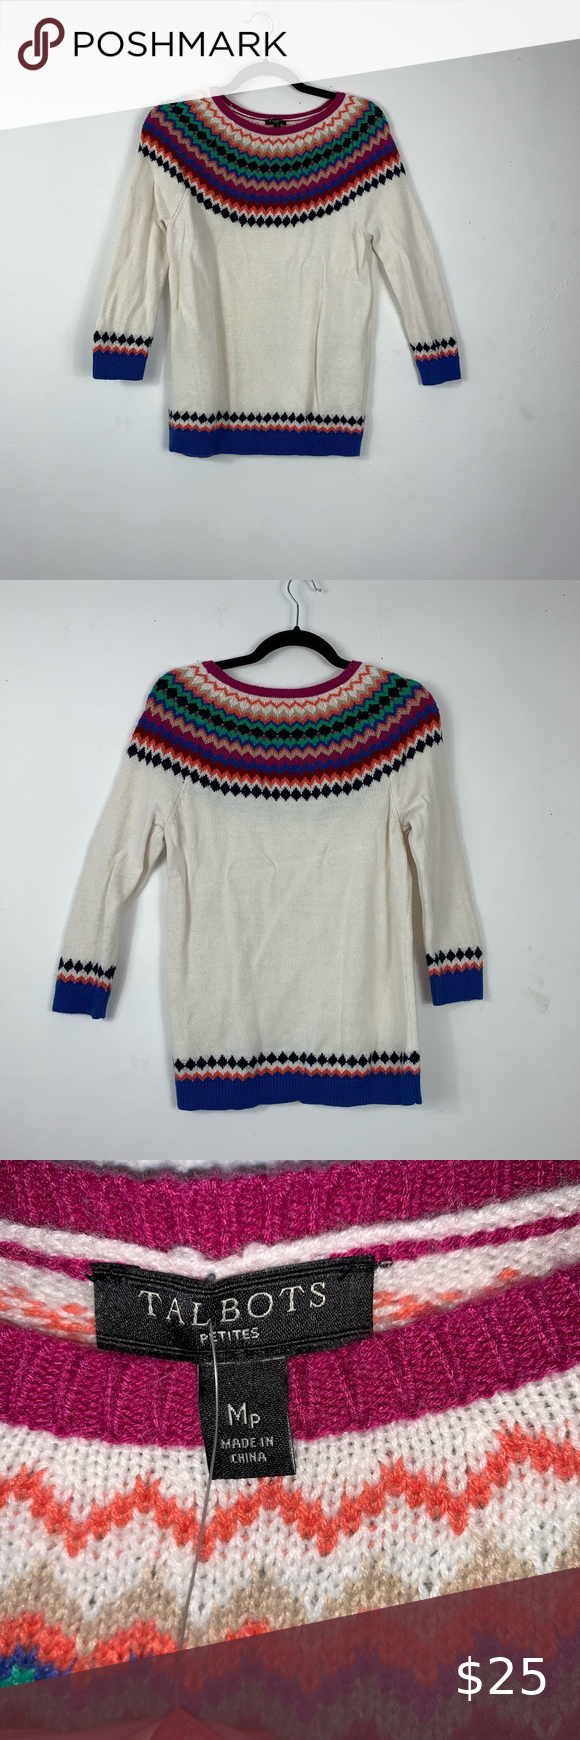 """Talbots Fair Isle Petite Medium Sweater M1192 Talbots Fair Isle Petite Medium Sweater M1192 EUC Preowned no holes, stains or tears.  Size: MP Measurements Approximate Measurements taken laying flat: Bust: 17"""" Shoulder to Bottom Hem: 26"""" This piece is a must have for your closet!!! MSRP: $90 Talbots Sweaters"""